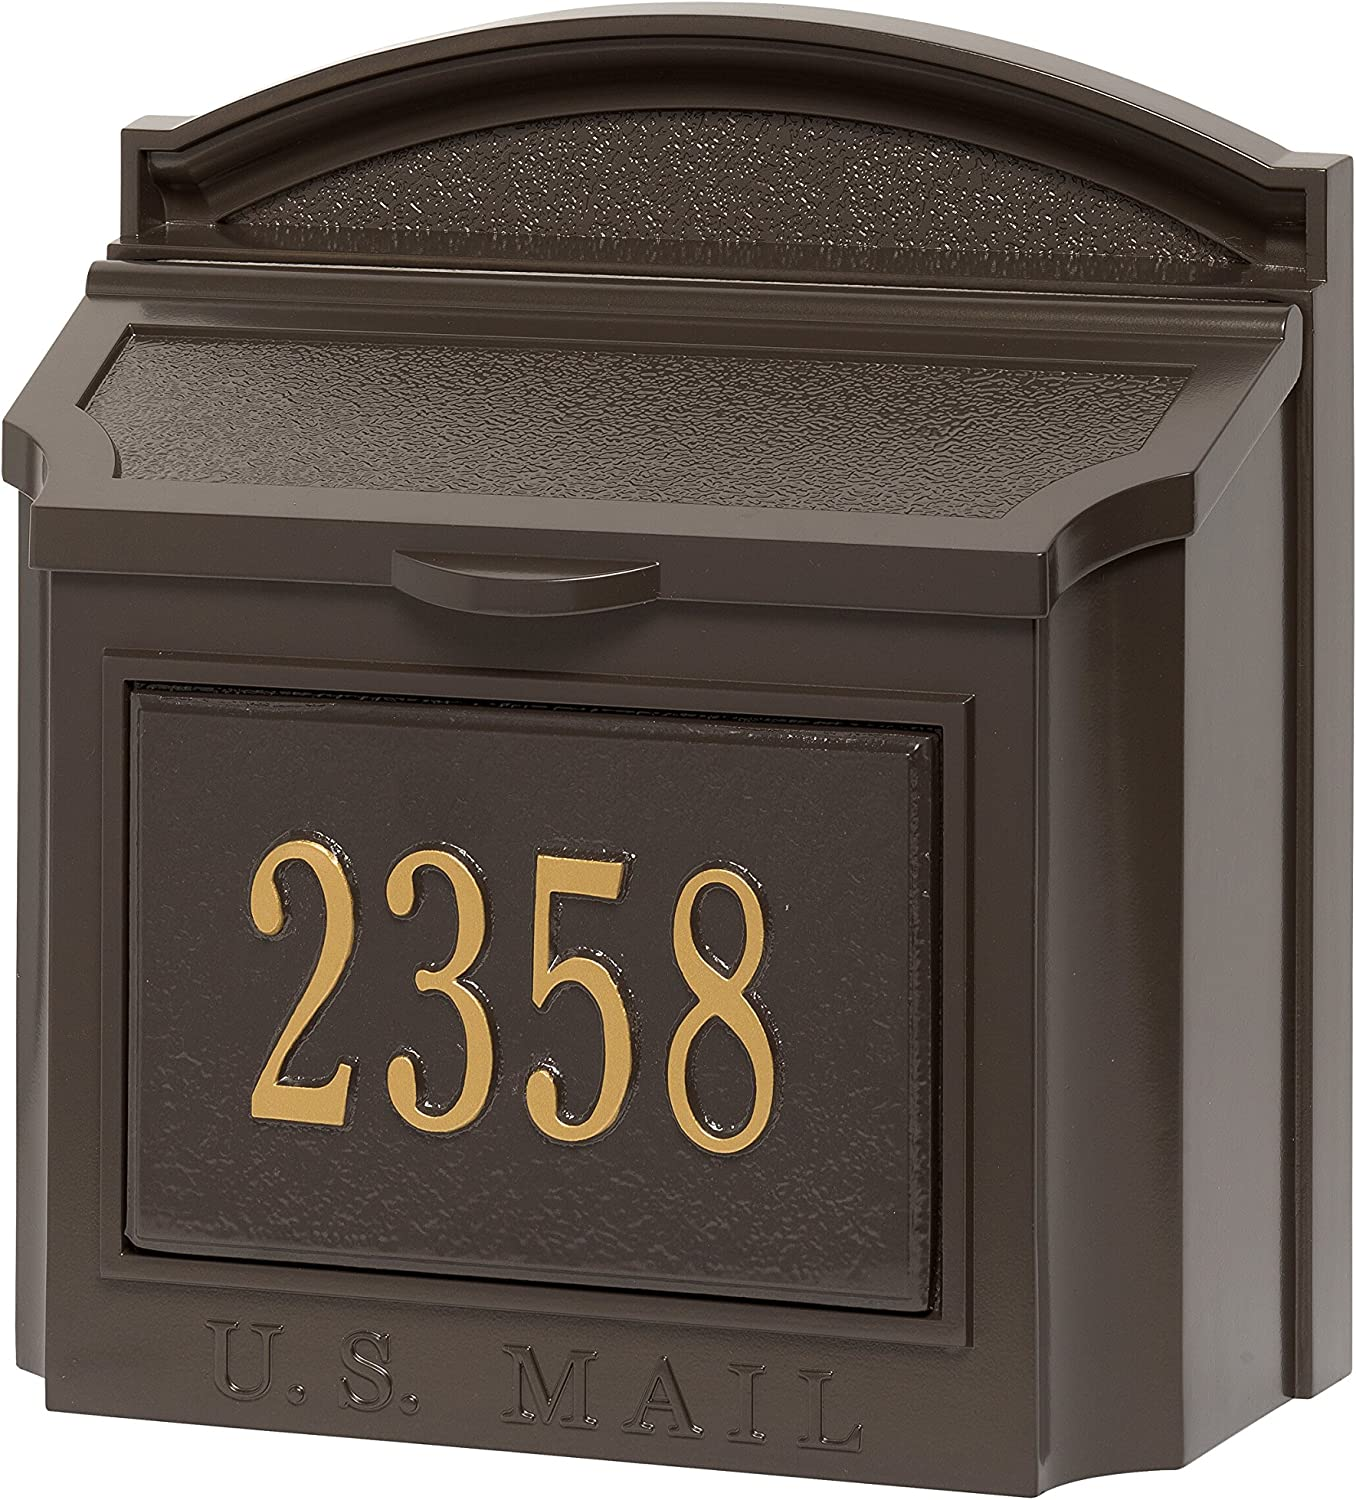 Wall Mounted Locking Mailbox (French Bronze) with Mailbox Number Plaque